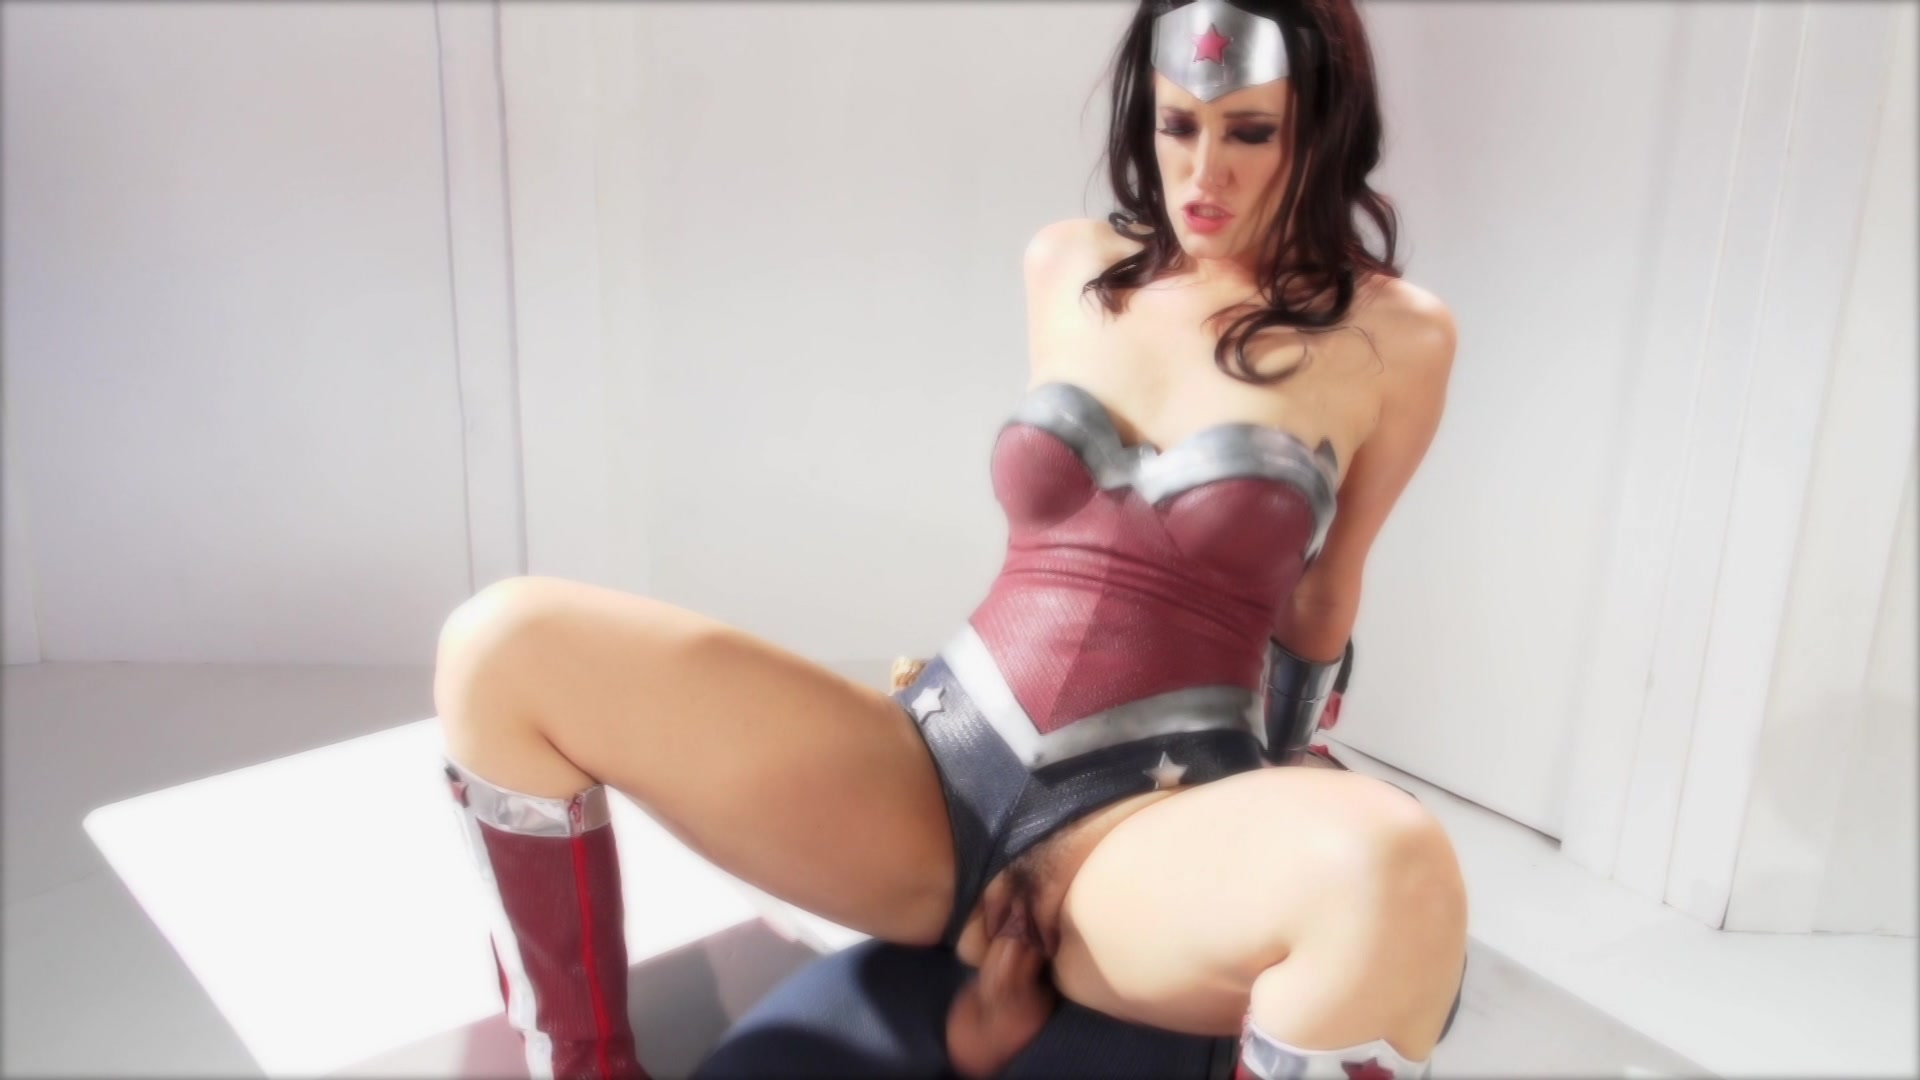 Batman Free wonder woman and porn